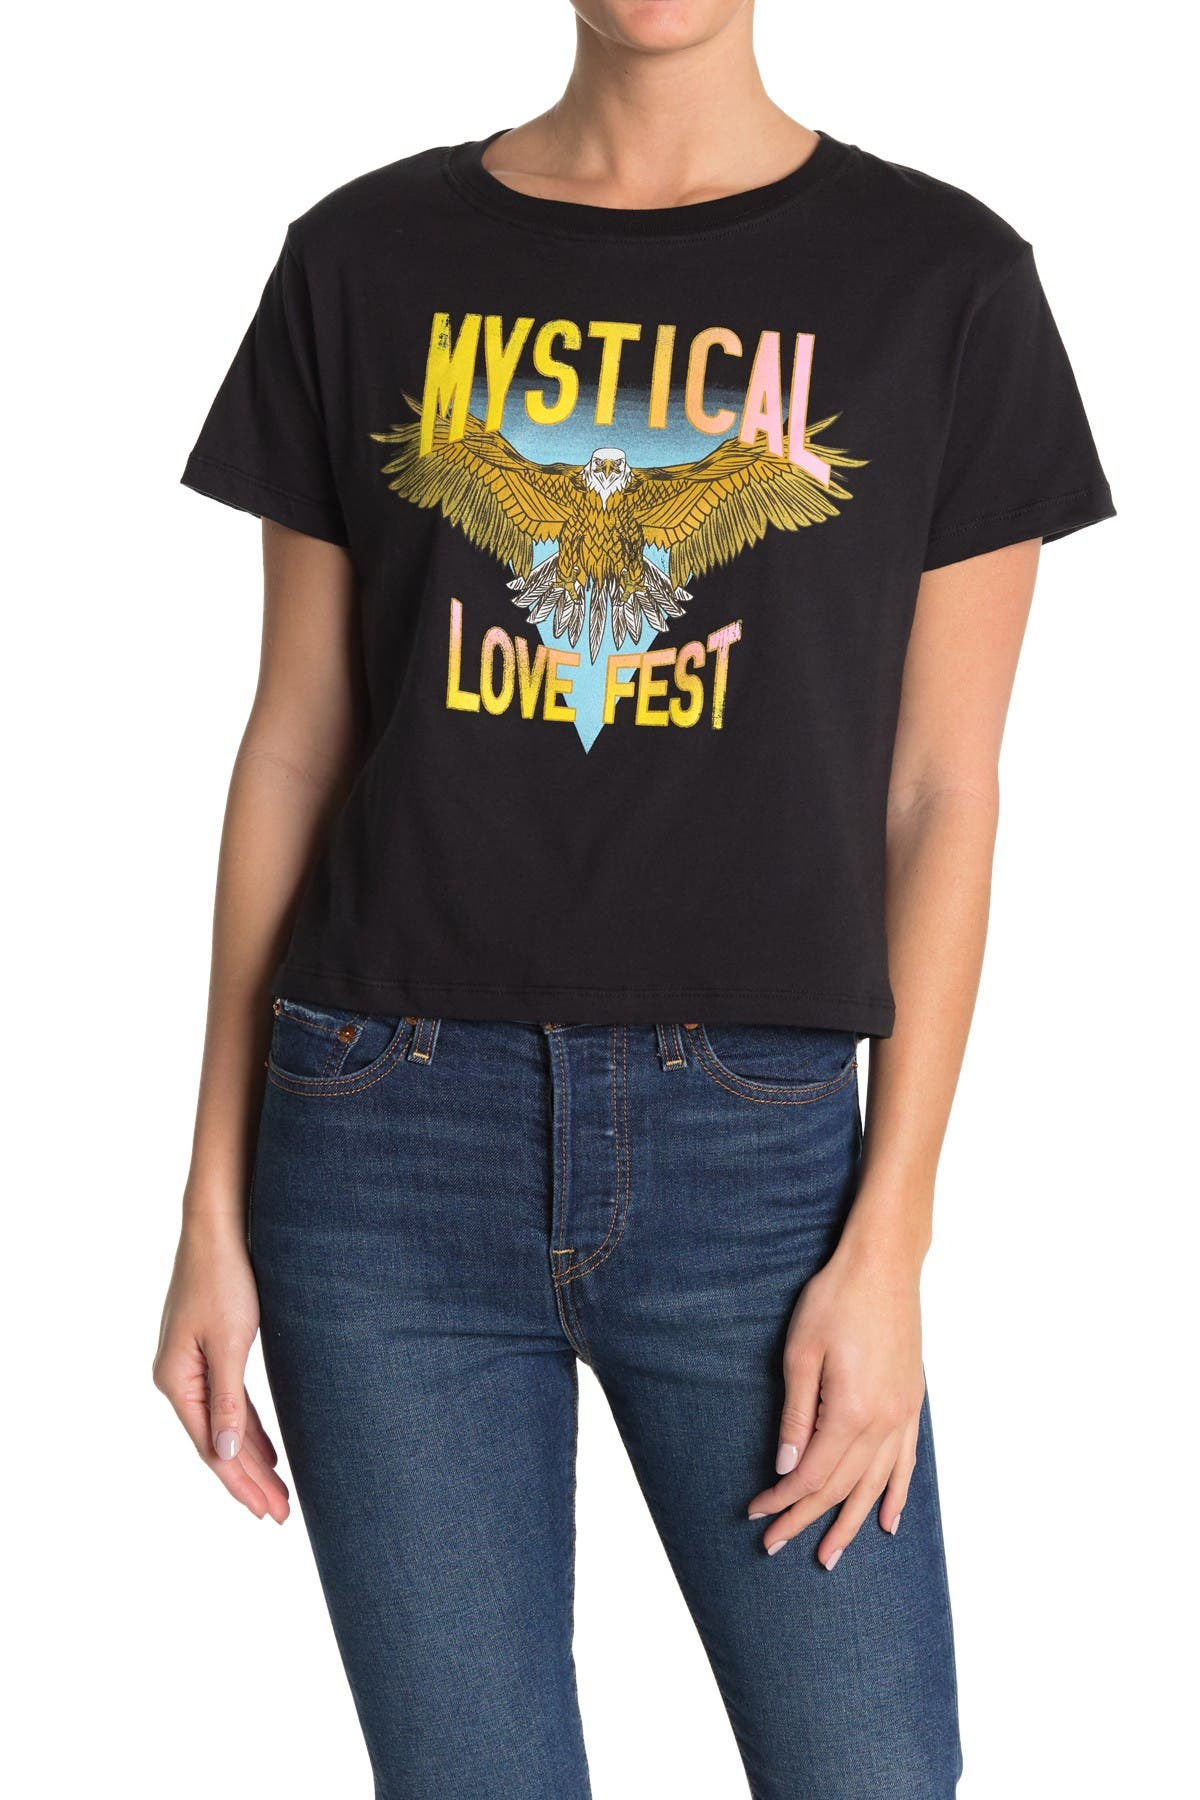 Image of CIRCLEX Mystical Love Fest Cropped T-Shirt